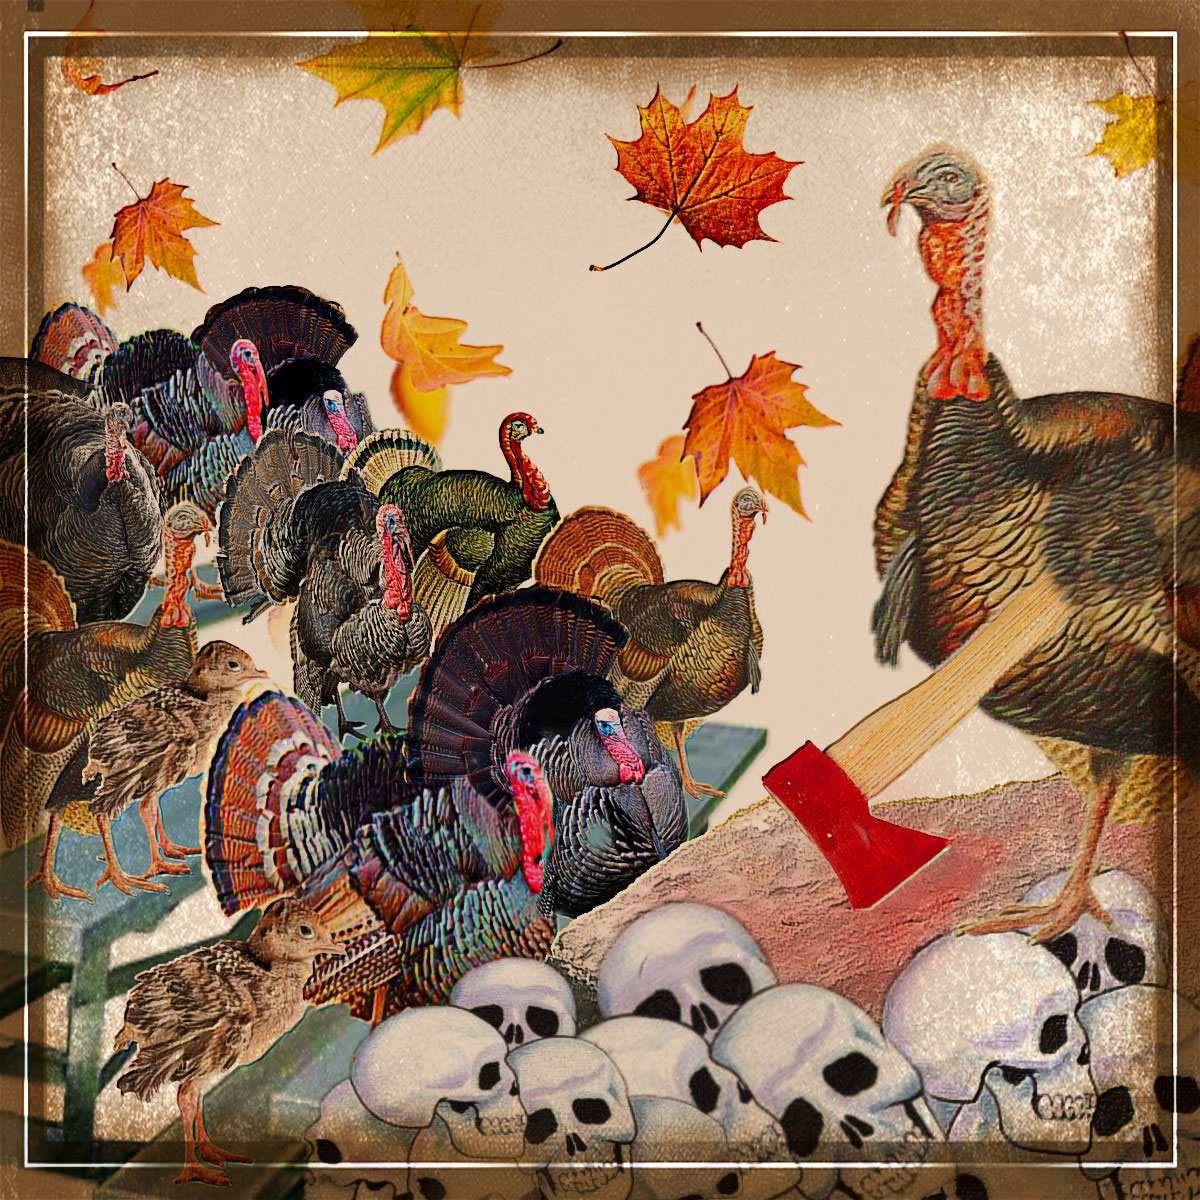 Turkey with Axe Standing on Human Skulls (Beth Clifton collage)